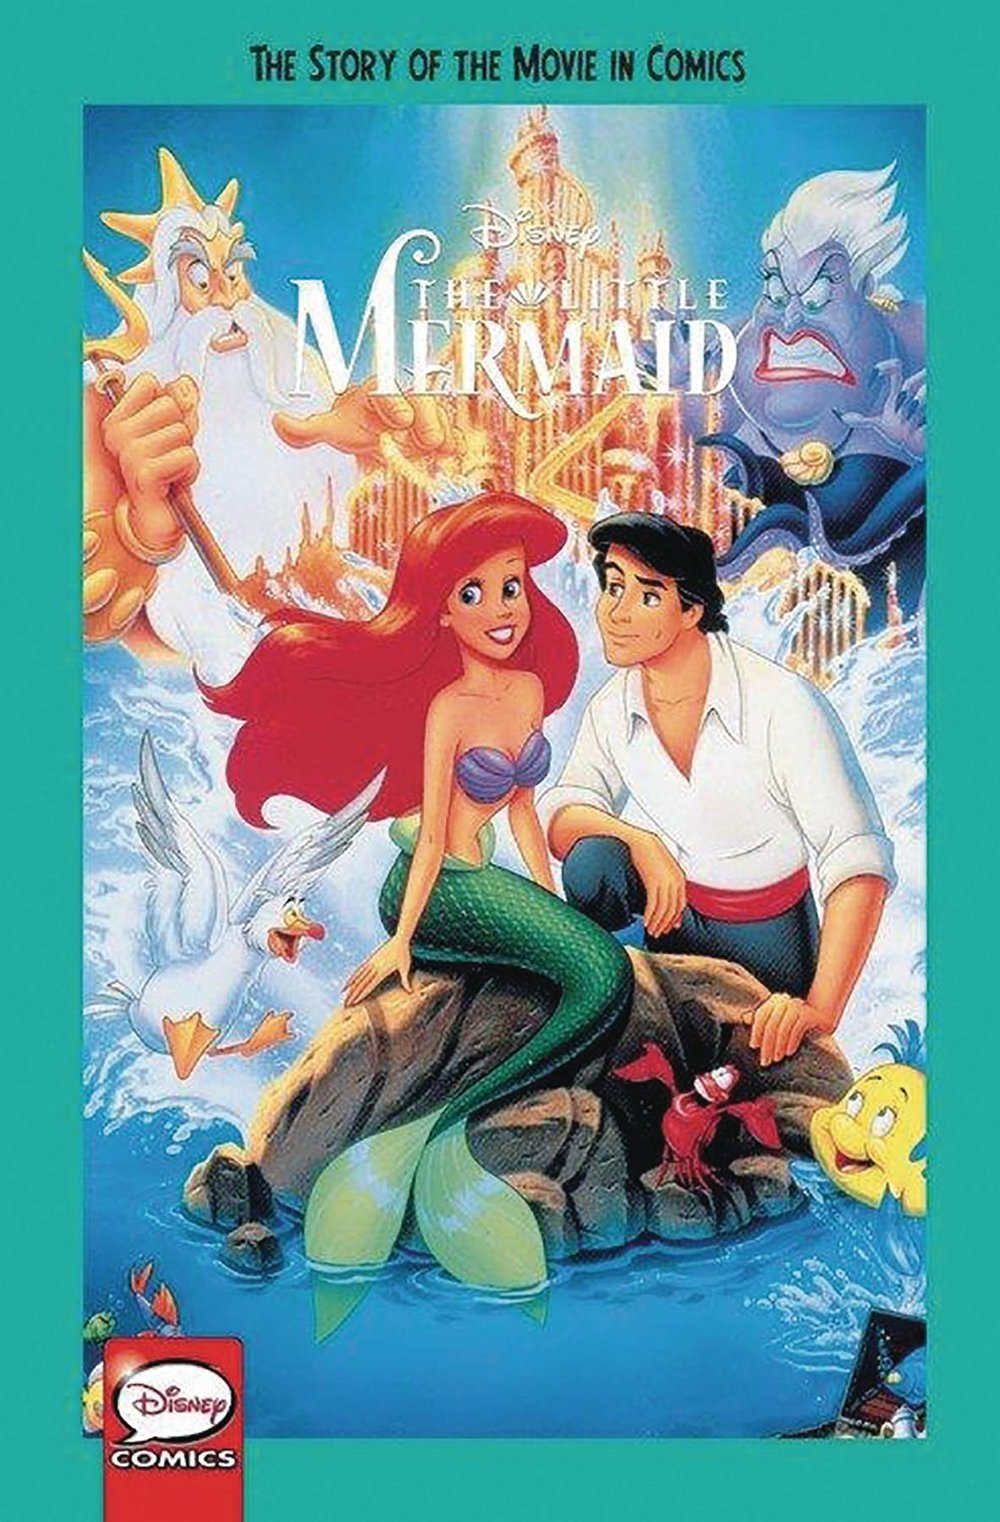 DISNEY THE LITTLE MERMAID STORY OF MOVIE IN COMICS YA GN.jpg